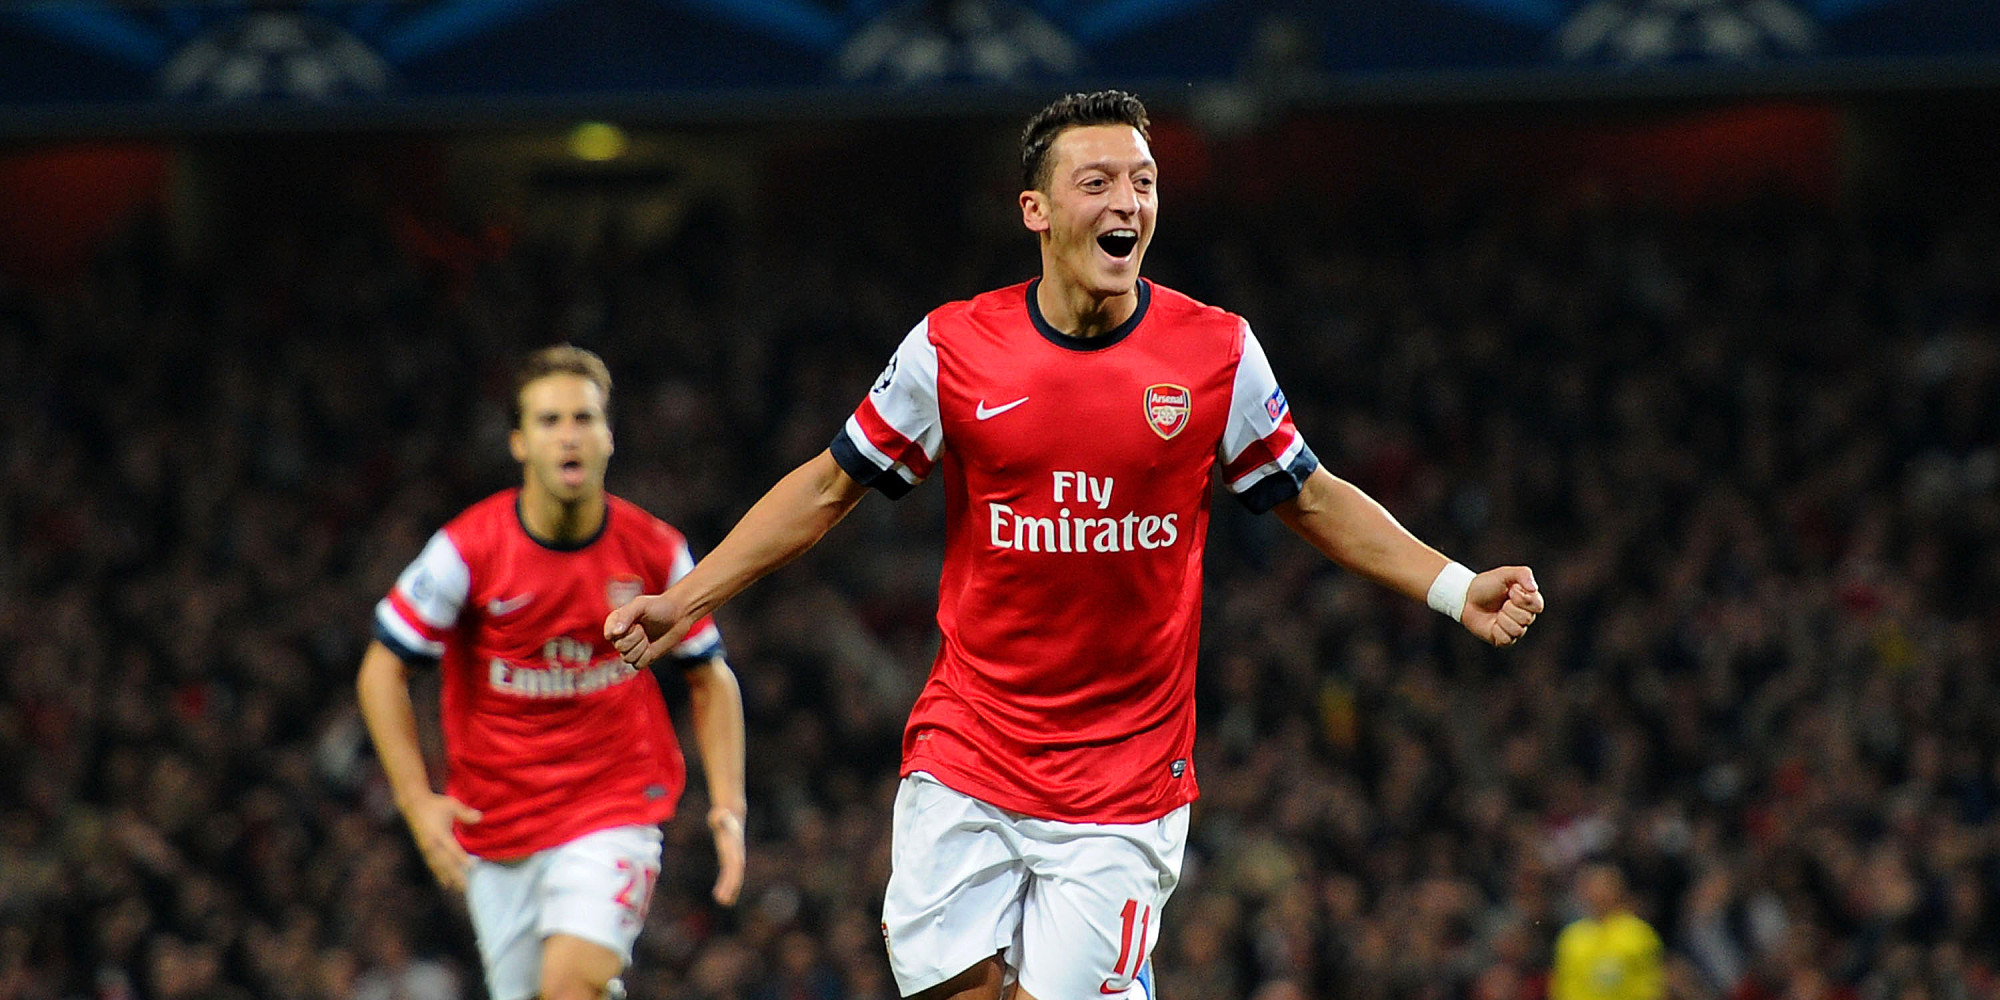 Mesut Özil Scores First Arsenal Goal, Celtic Lose And More